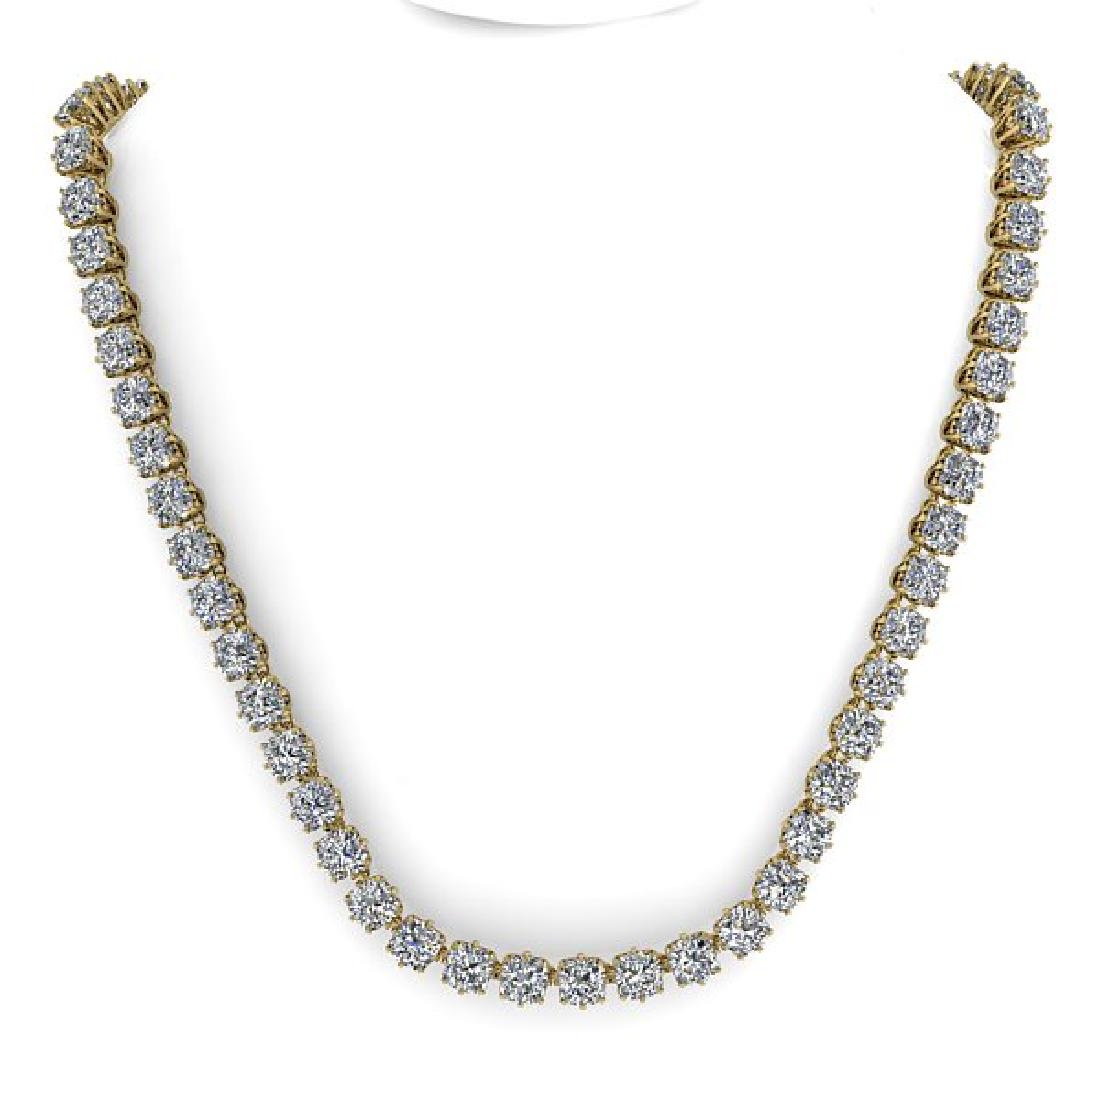 28 CTW Oval Cut SI Certified Diamond Necklace 14K - 3